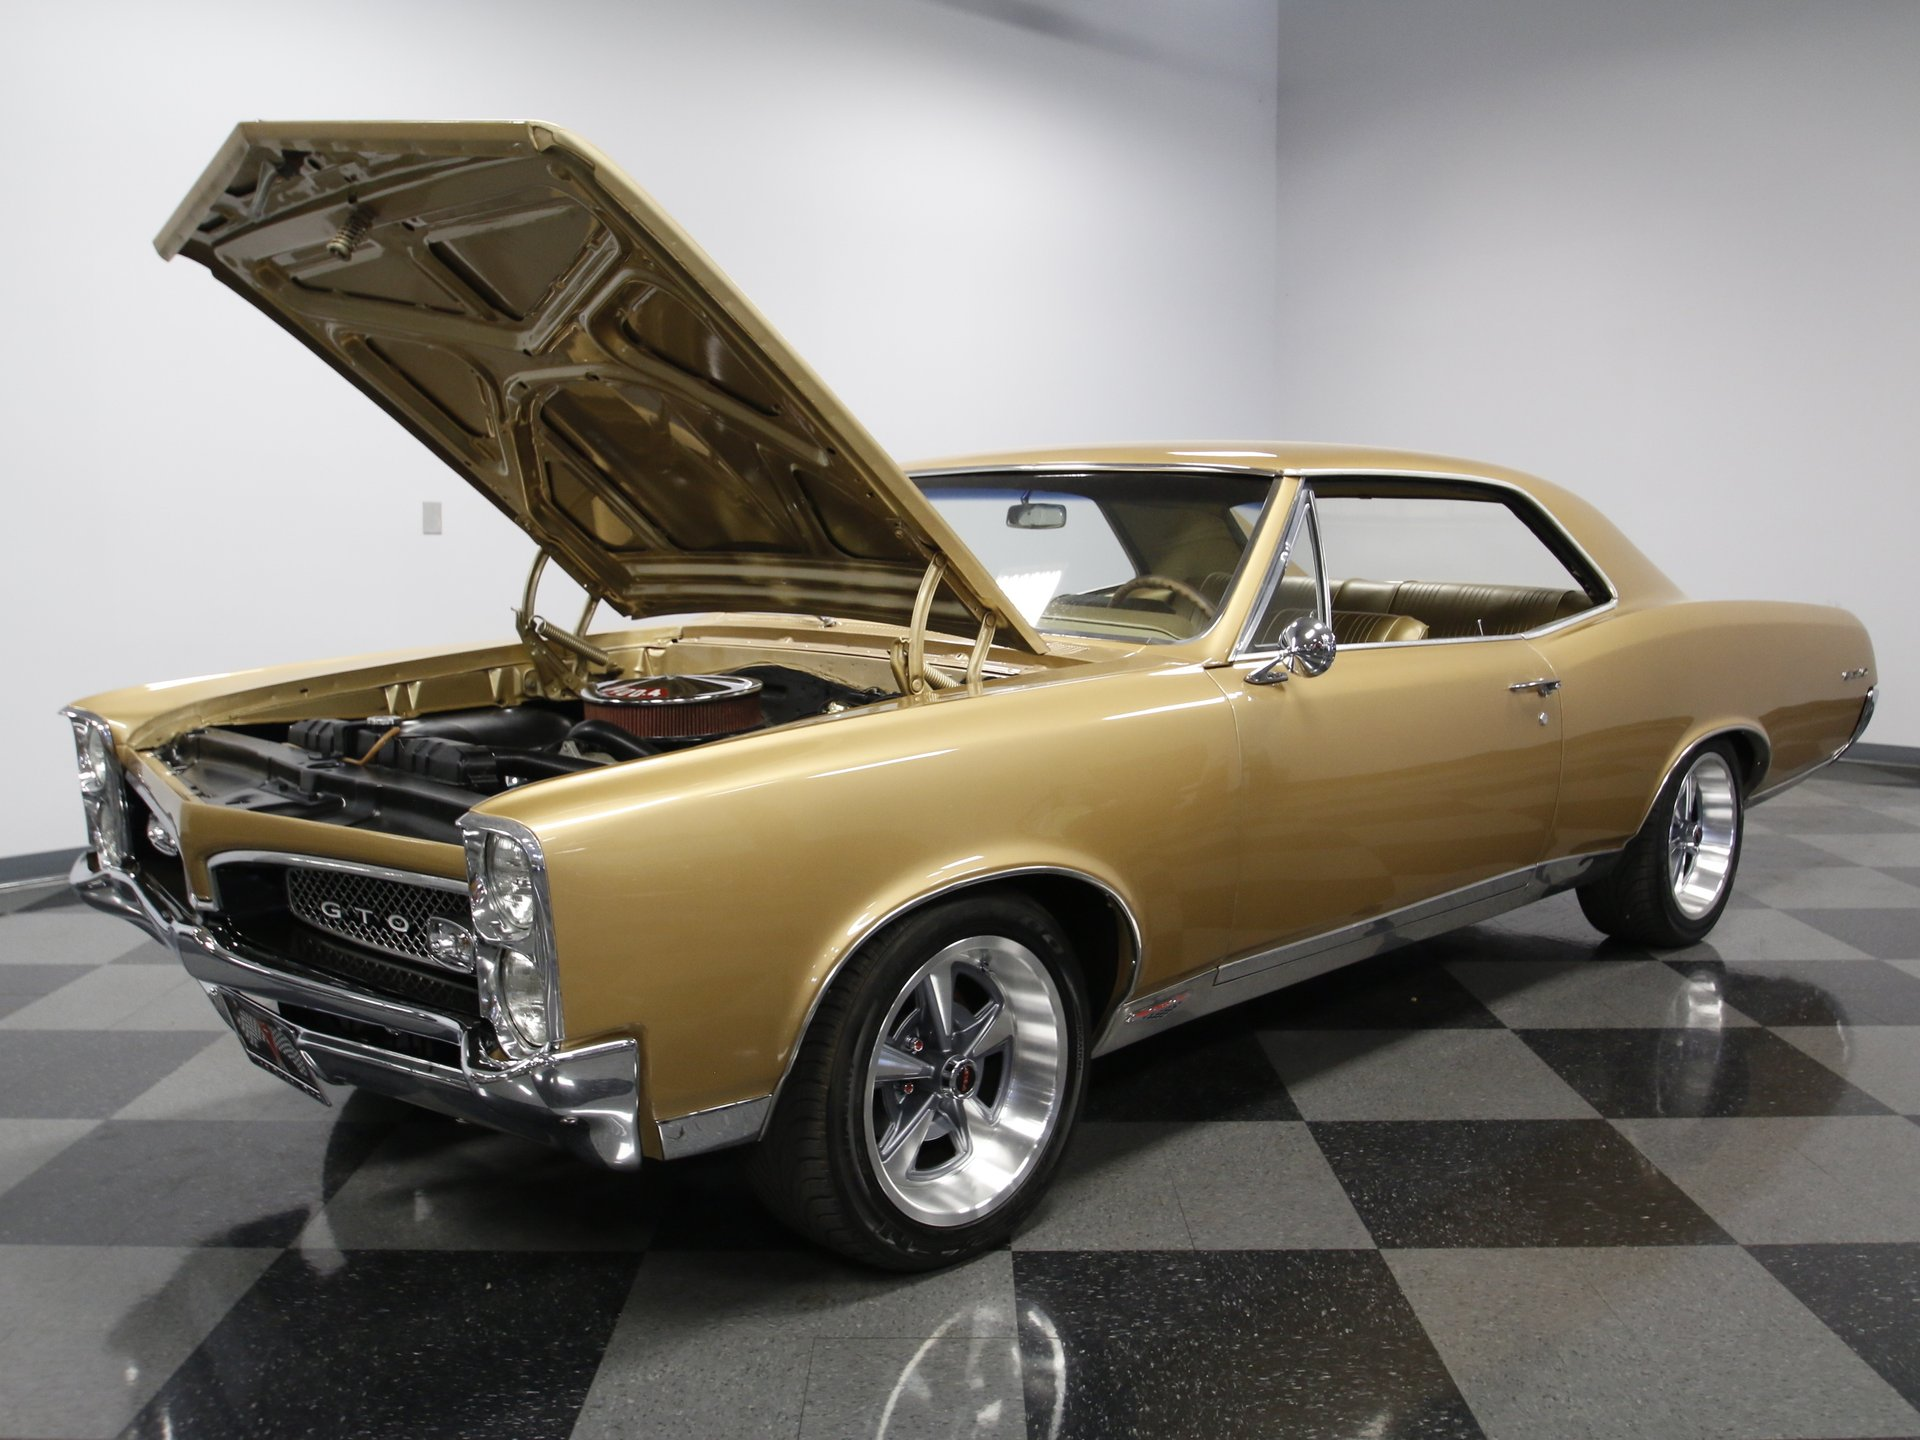 1967 Pontiac GTO | Streetside Classics - The Nation's Trusted